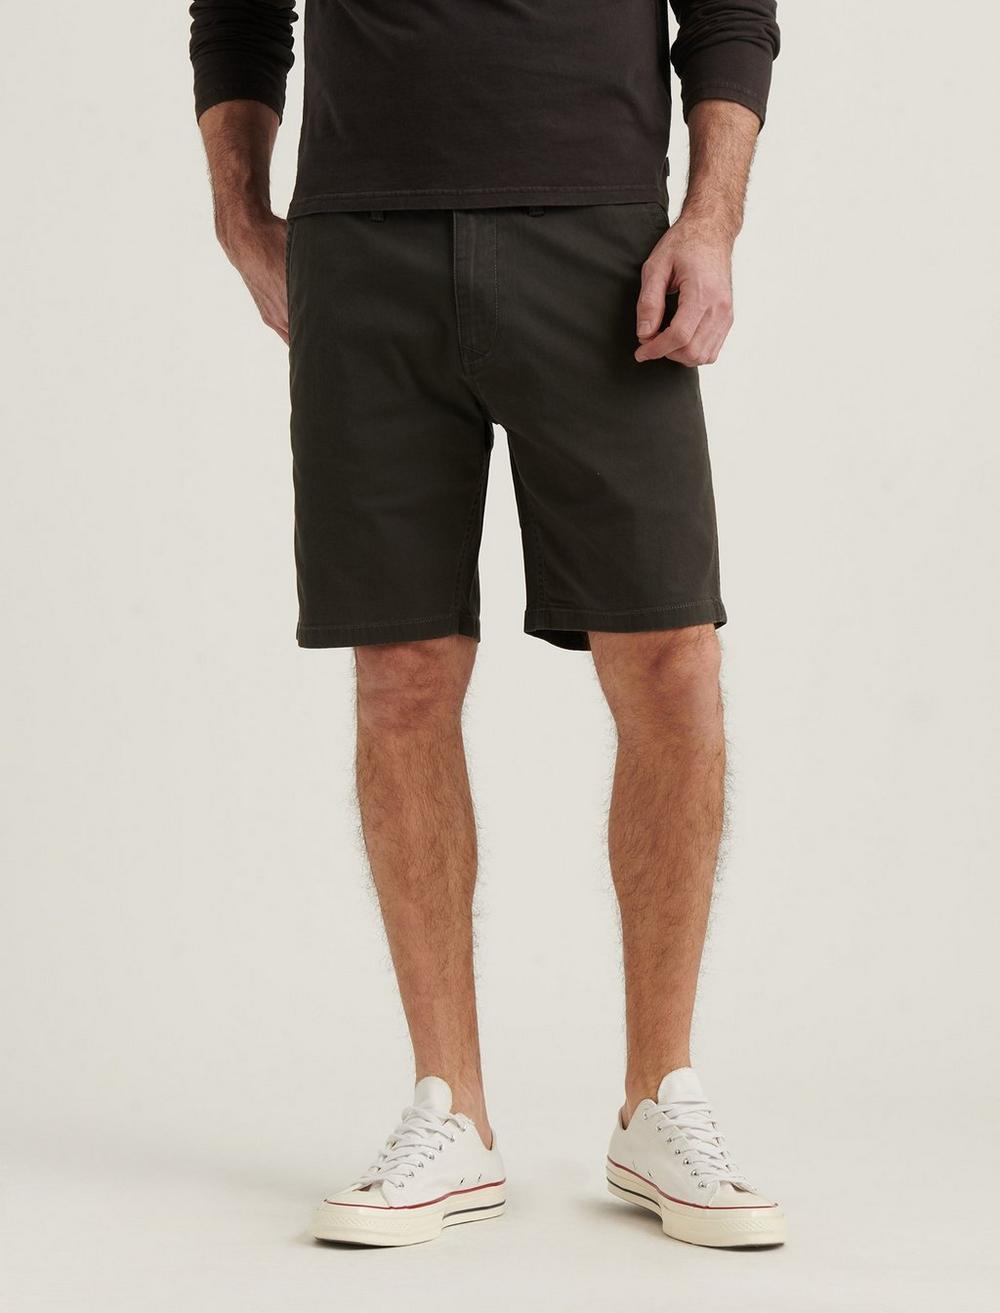 STRETCH TWILL FLAT FRONT SHORT, image 4